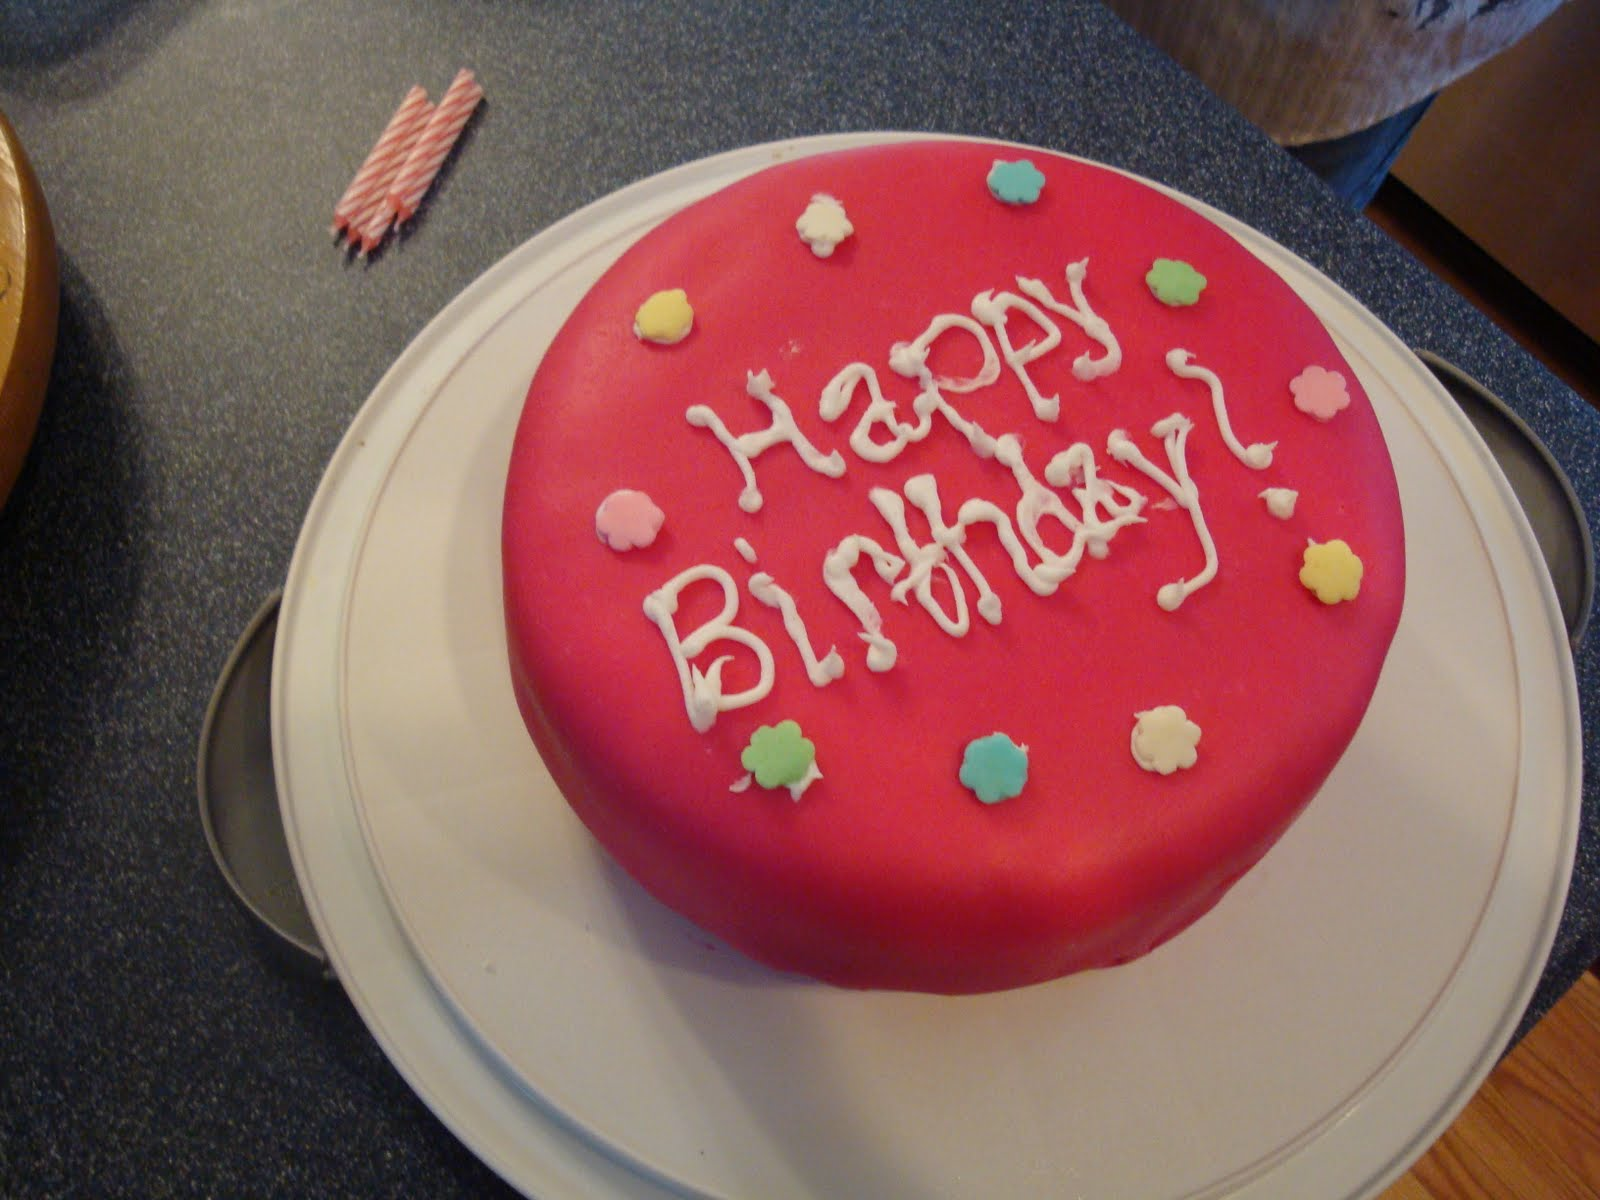 Fondant Cake Decorating Classes Michaels : 1,440 Minutes: Fondant and Toilet Seats (Yes, You re ...